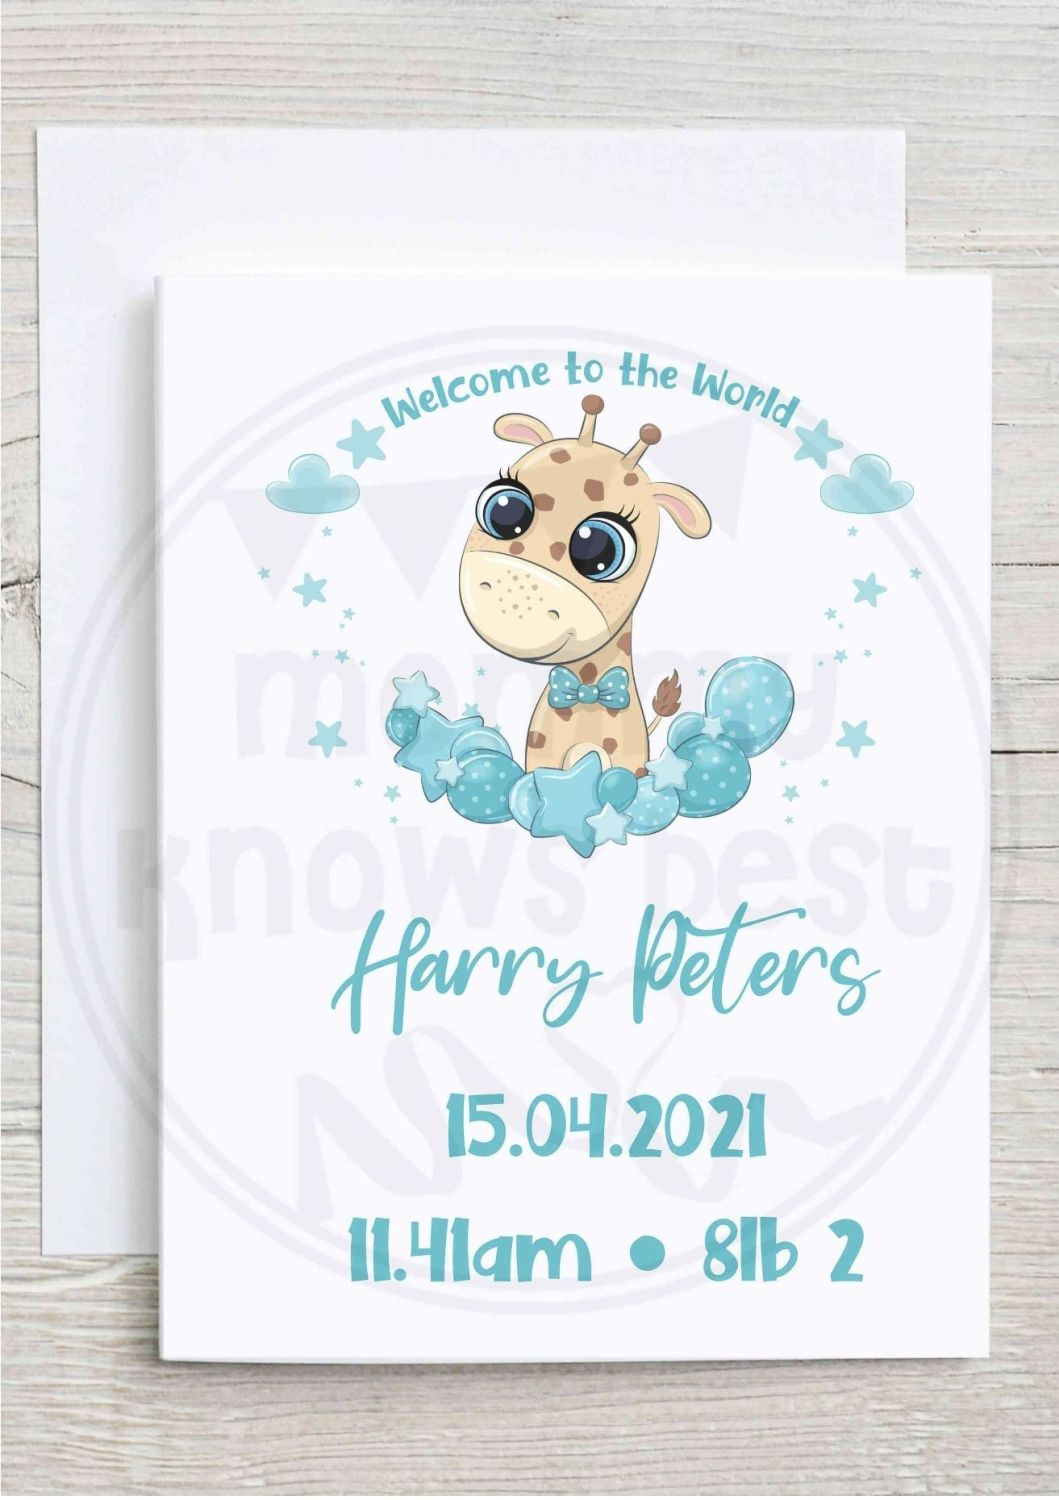 New born baby greetings card - personalised with name, date and weight. Pin